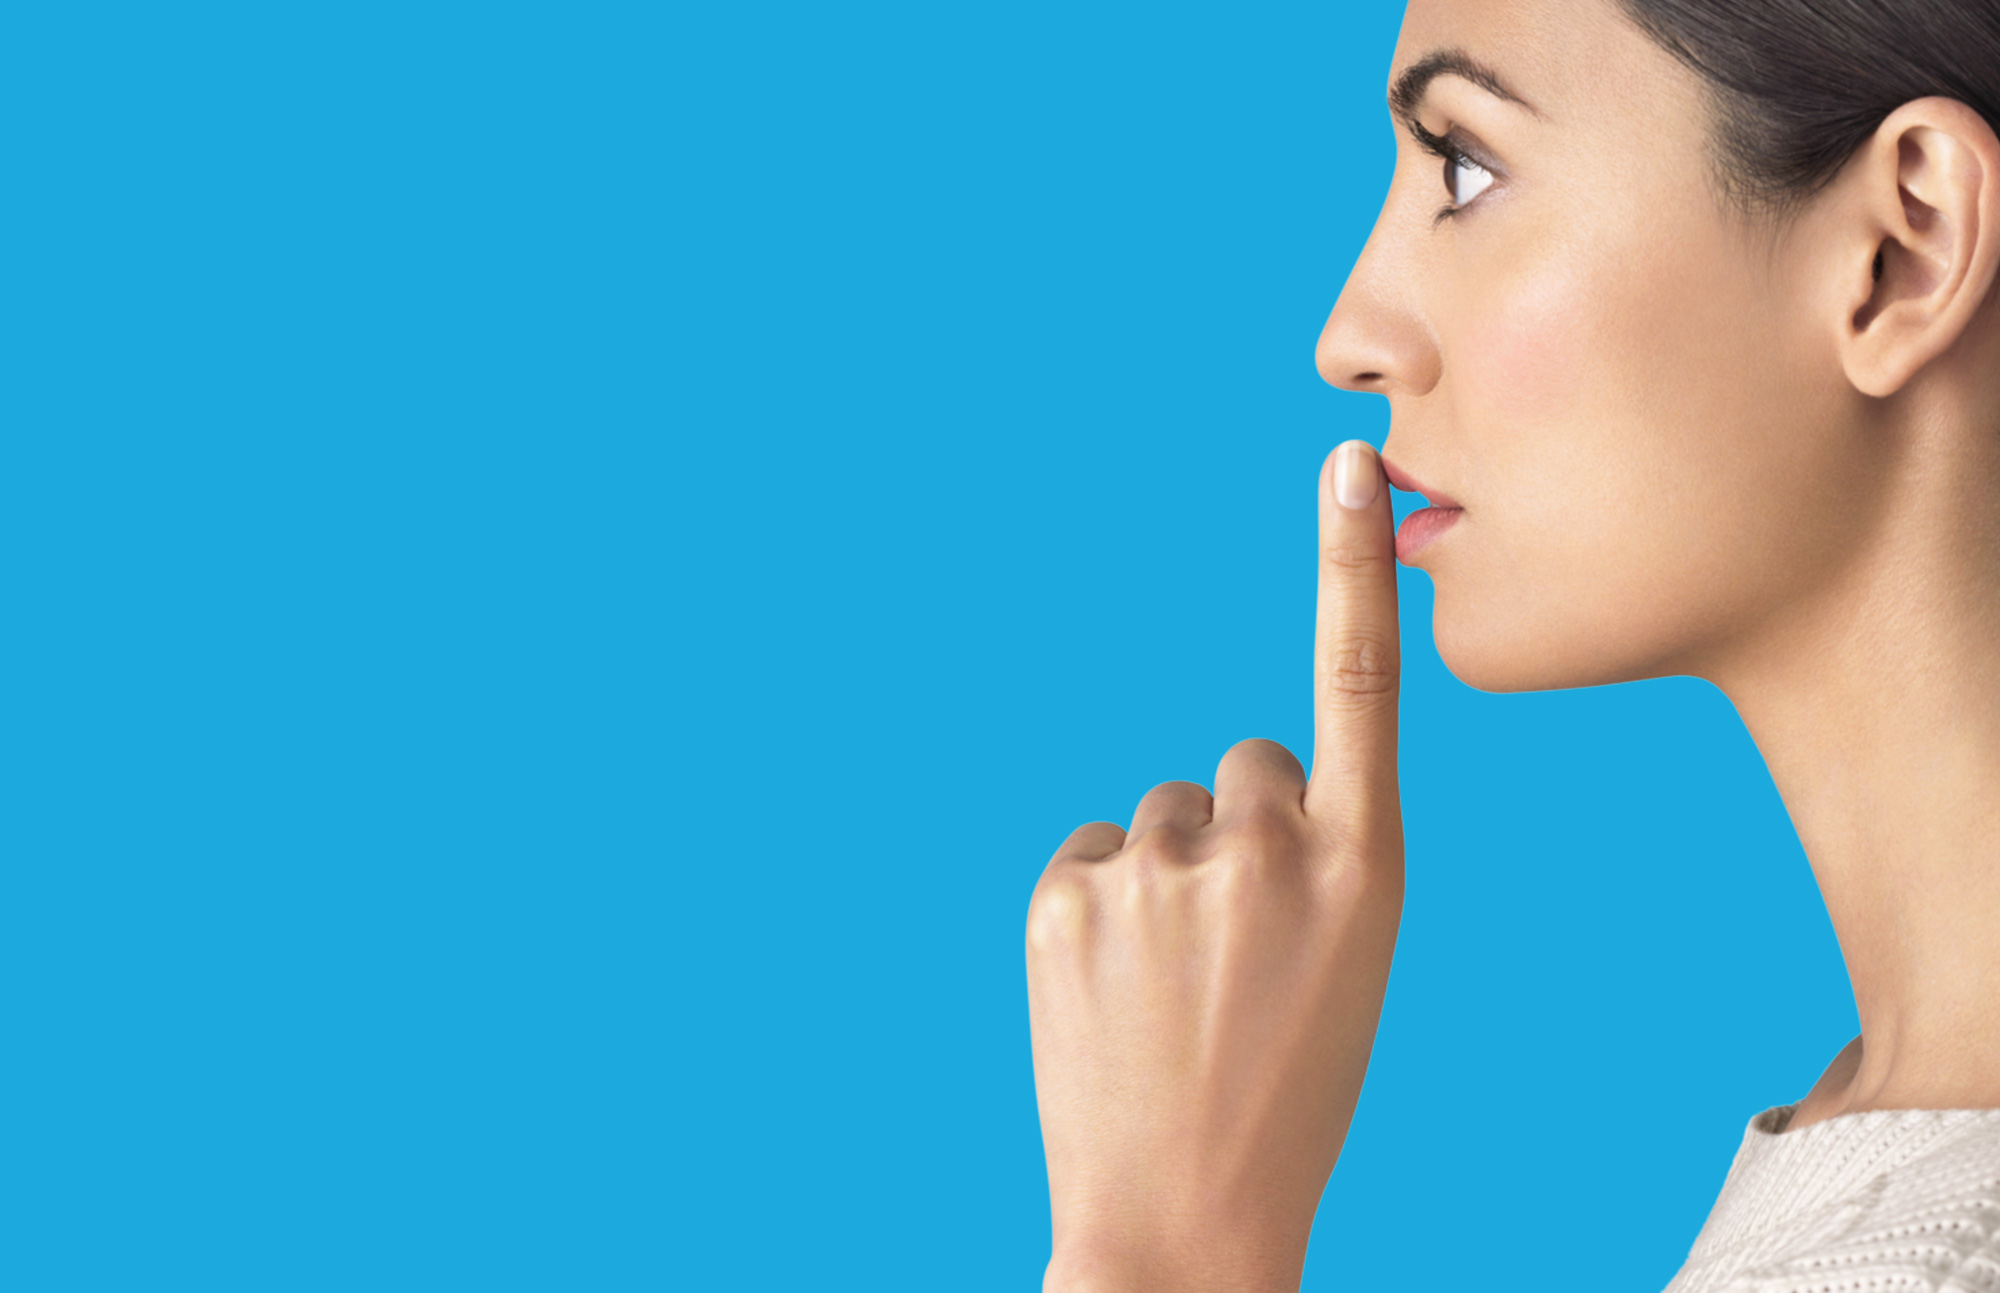 Image of Woman placing finger to mouth to request silence